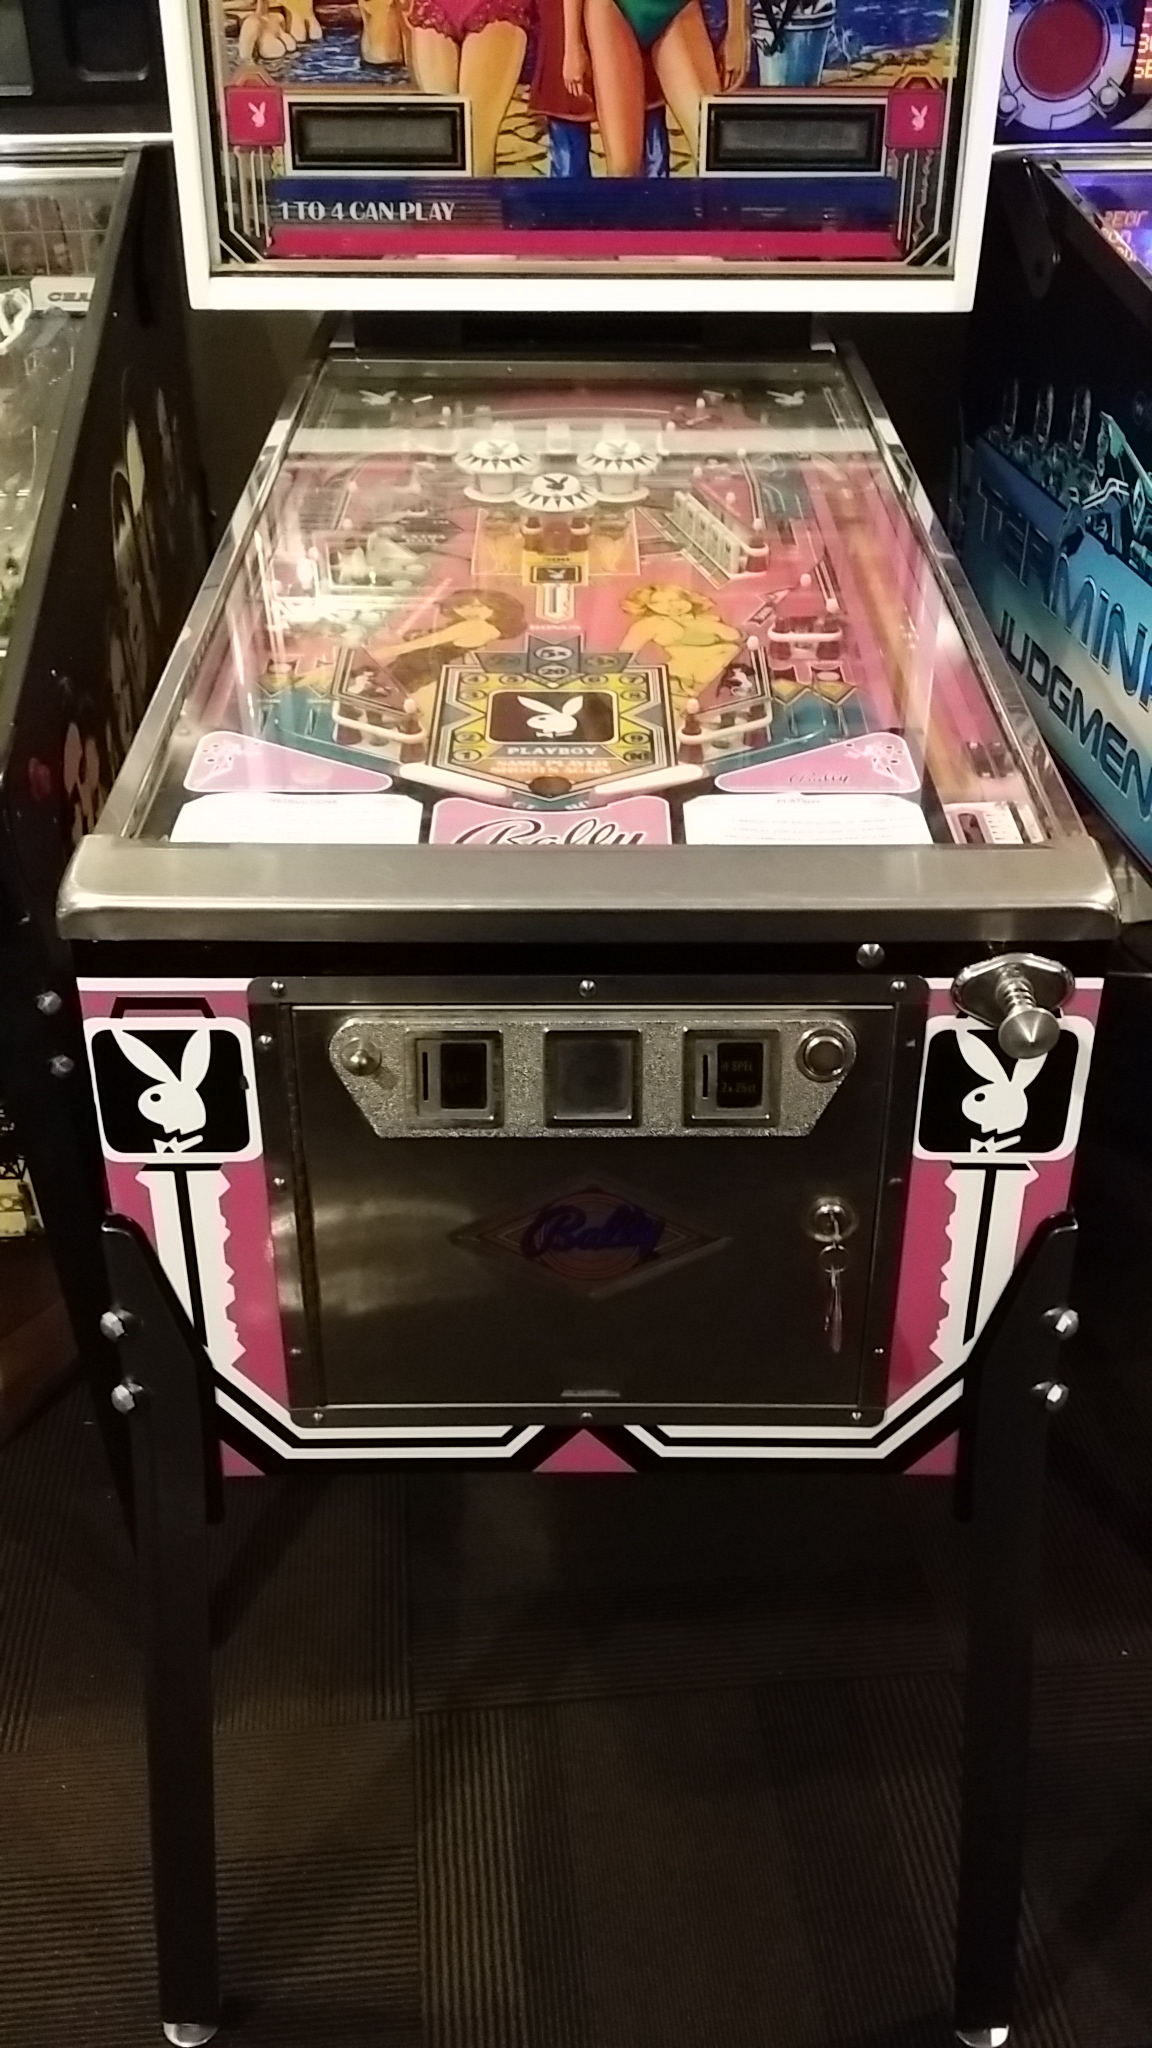 Playboy Pinball Machine For Sale At Arcade Classics Australia